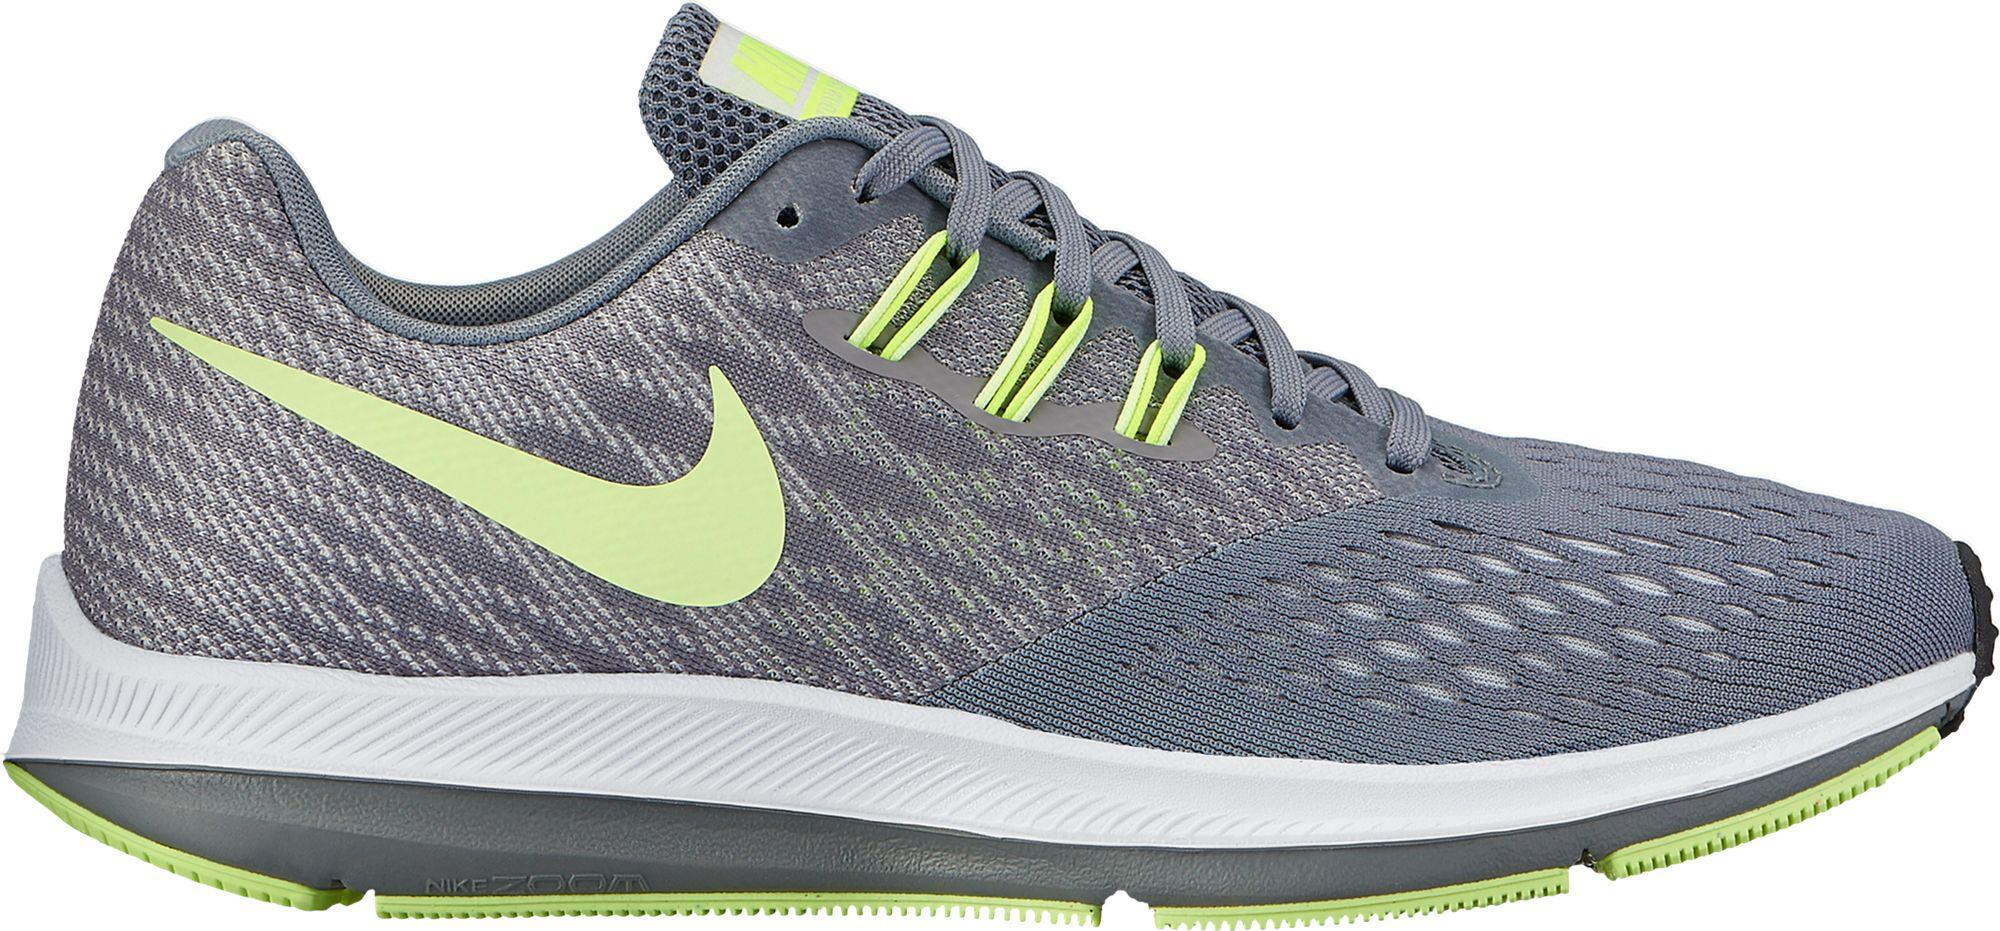 99f6ac8c231 Lyst - Nike Air Zoom Winflo 4 Running Shoes in Gray for Men